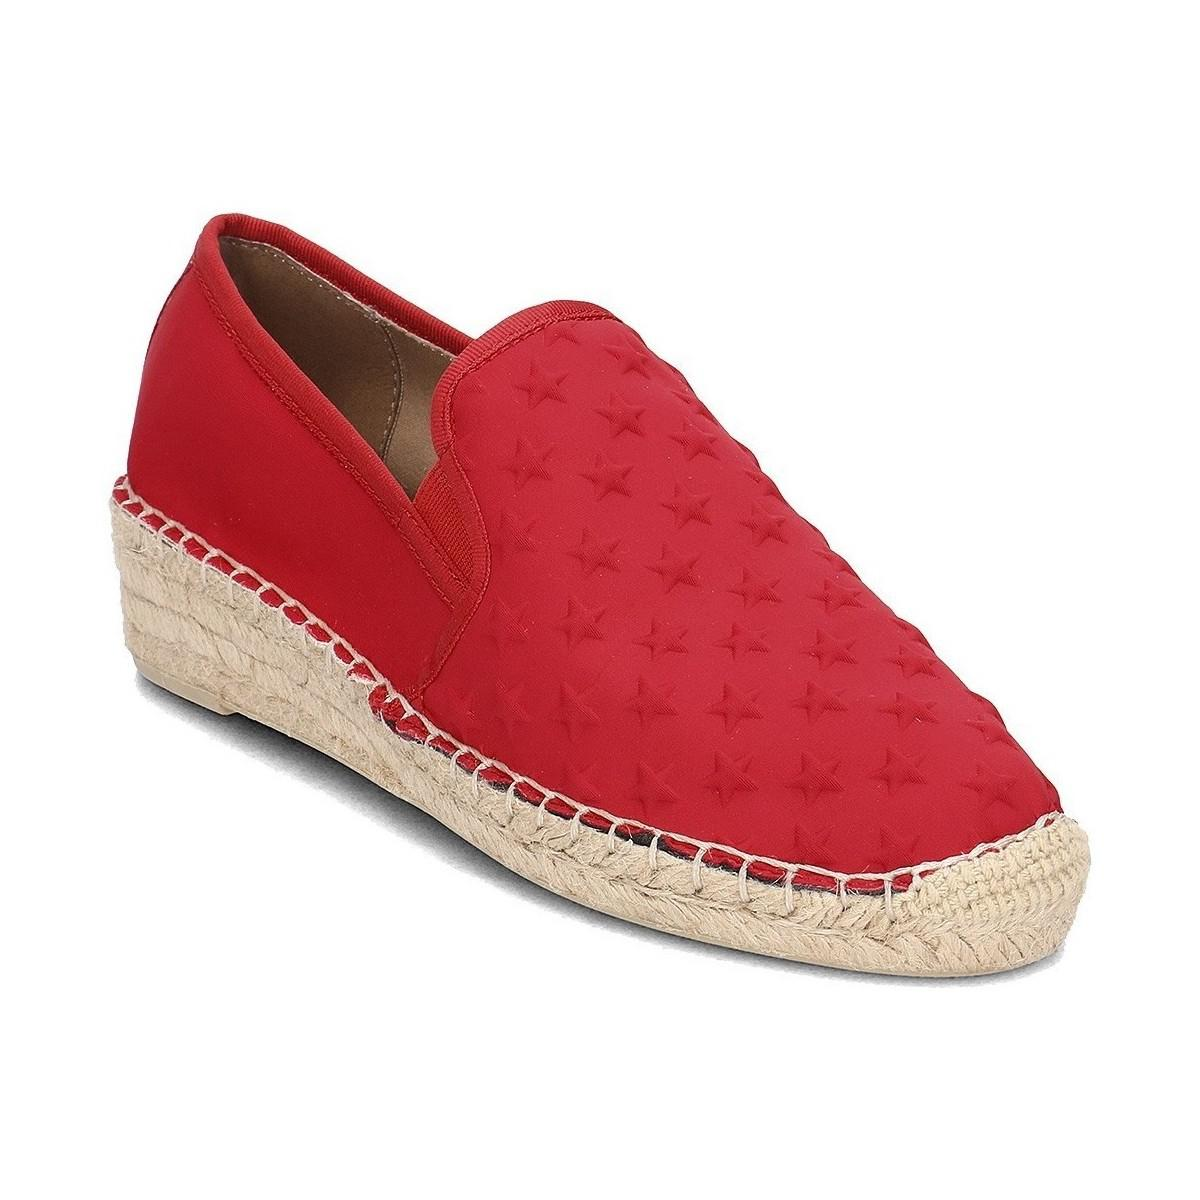 5592c5a9f1310 Tommy Hilfiger Fw0fw02263 Women s Espadrilles   Casual Shoes In Red ...